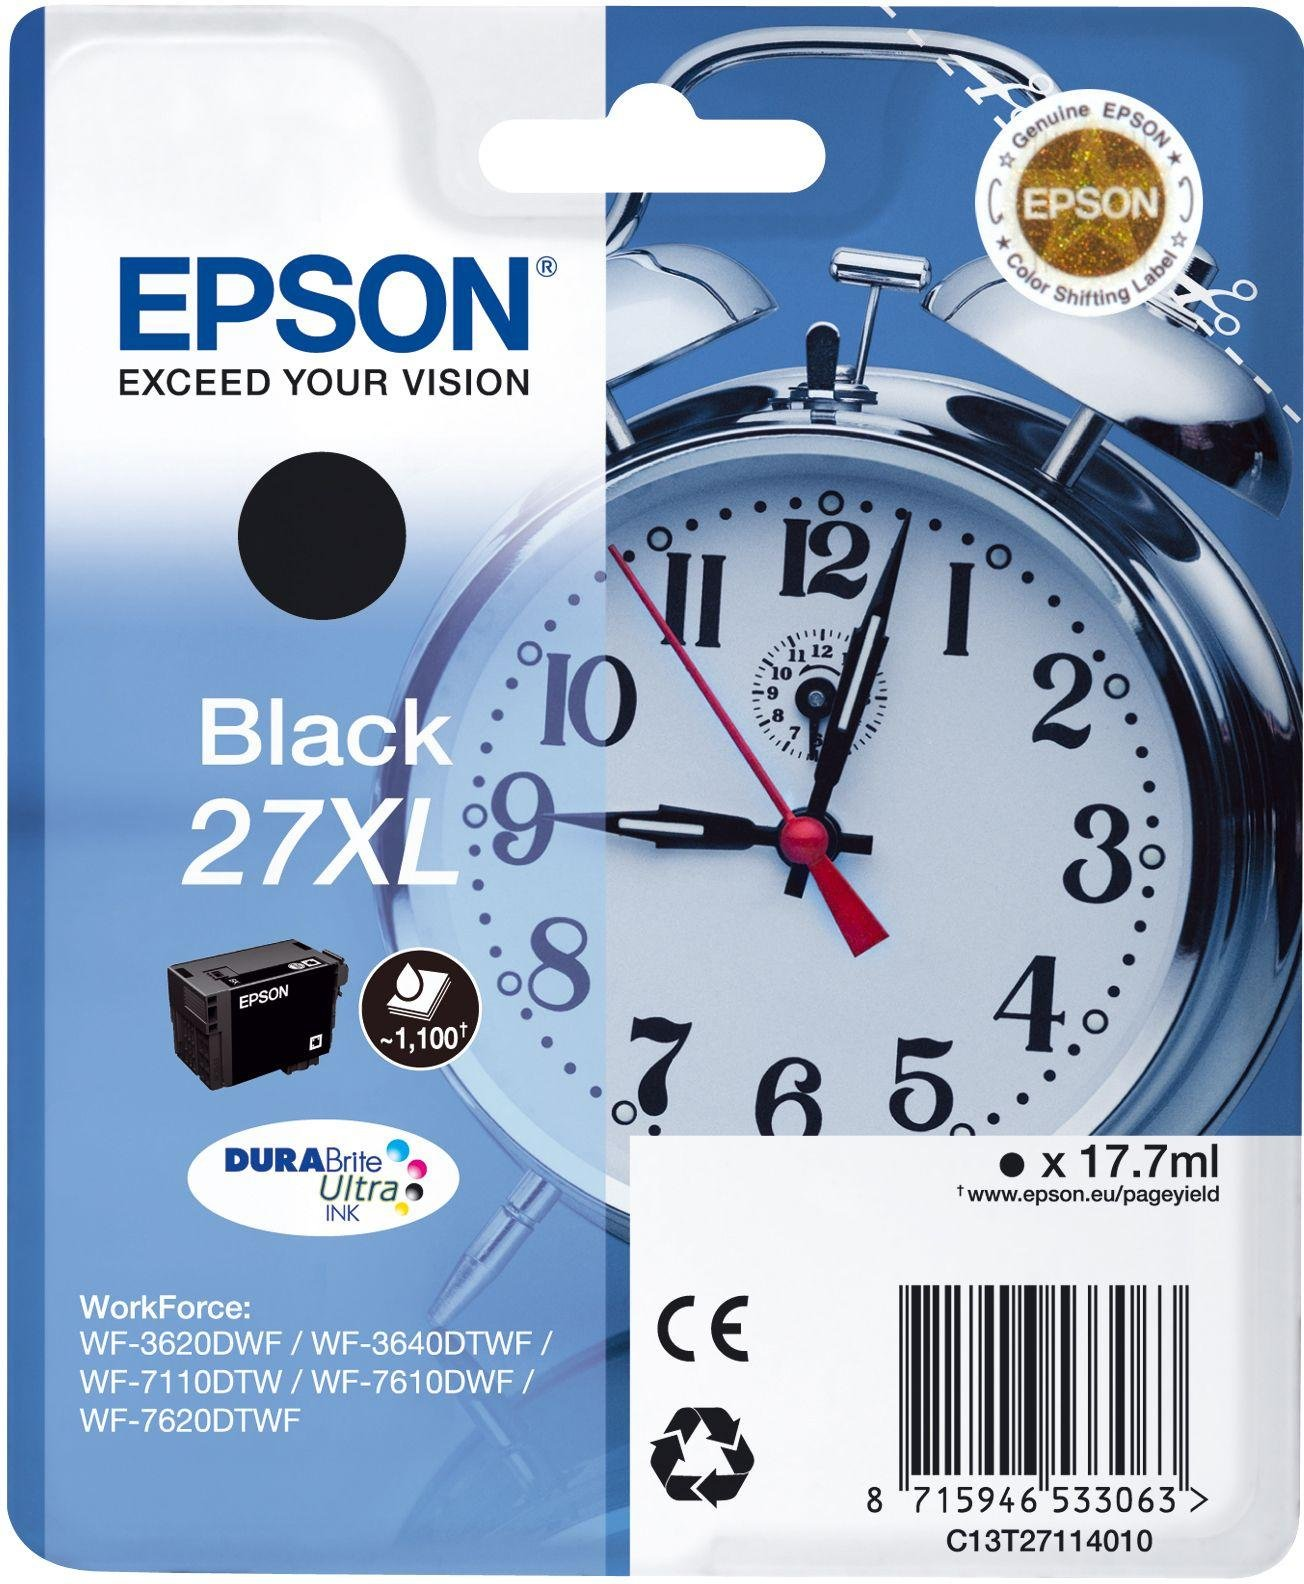 Epson 27XL Alarm Clock Ink Cartridge - Black from Epson